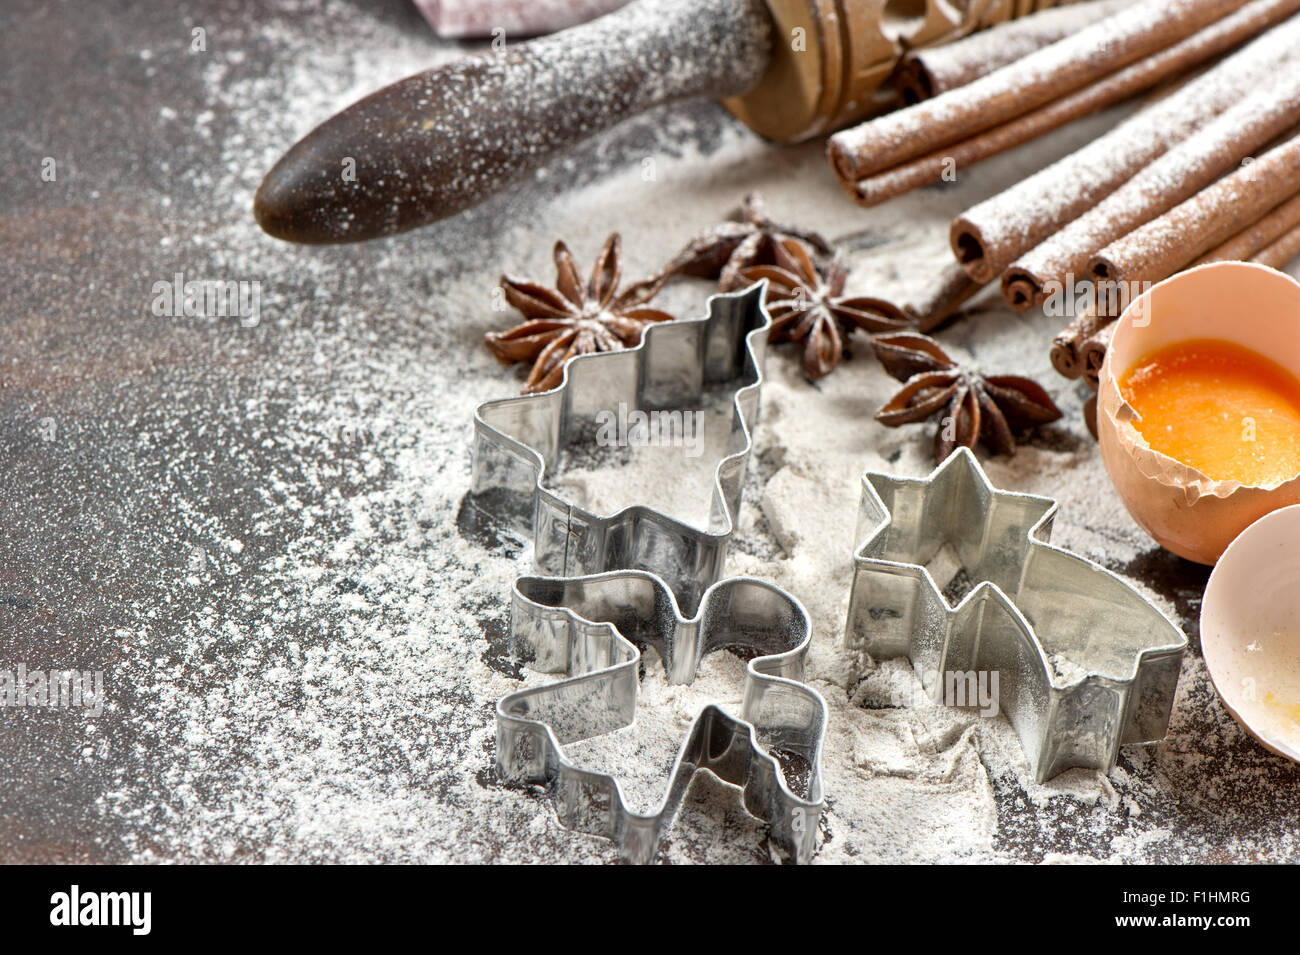 Baking ingredients and tolls for dough preparation. Flour, eggs, rolling pin and cookie cutters. Christmas food - Stock Image